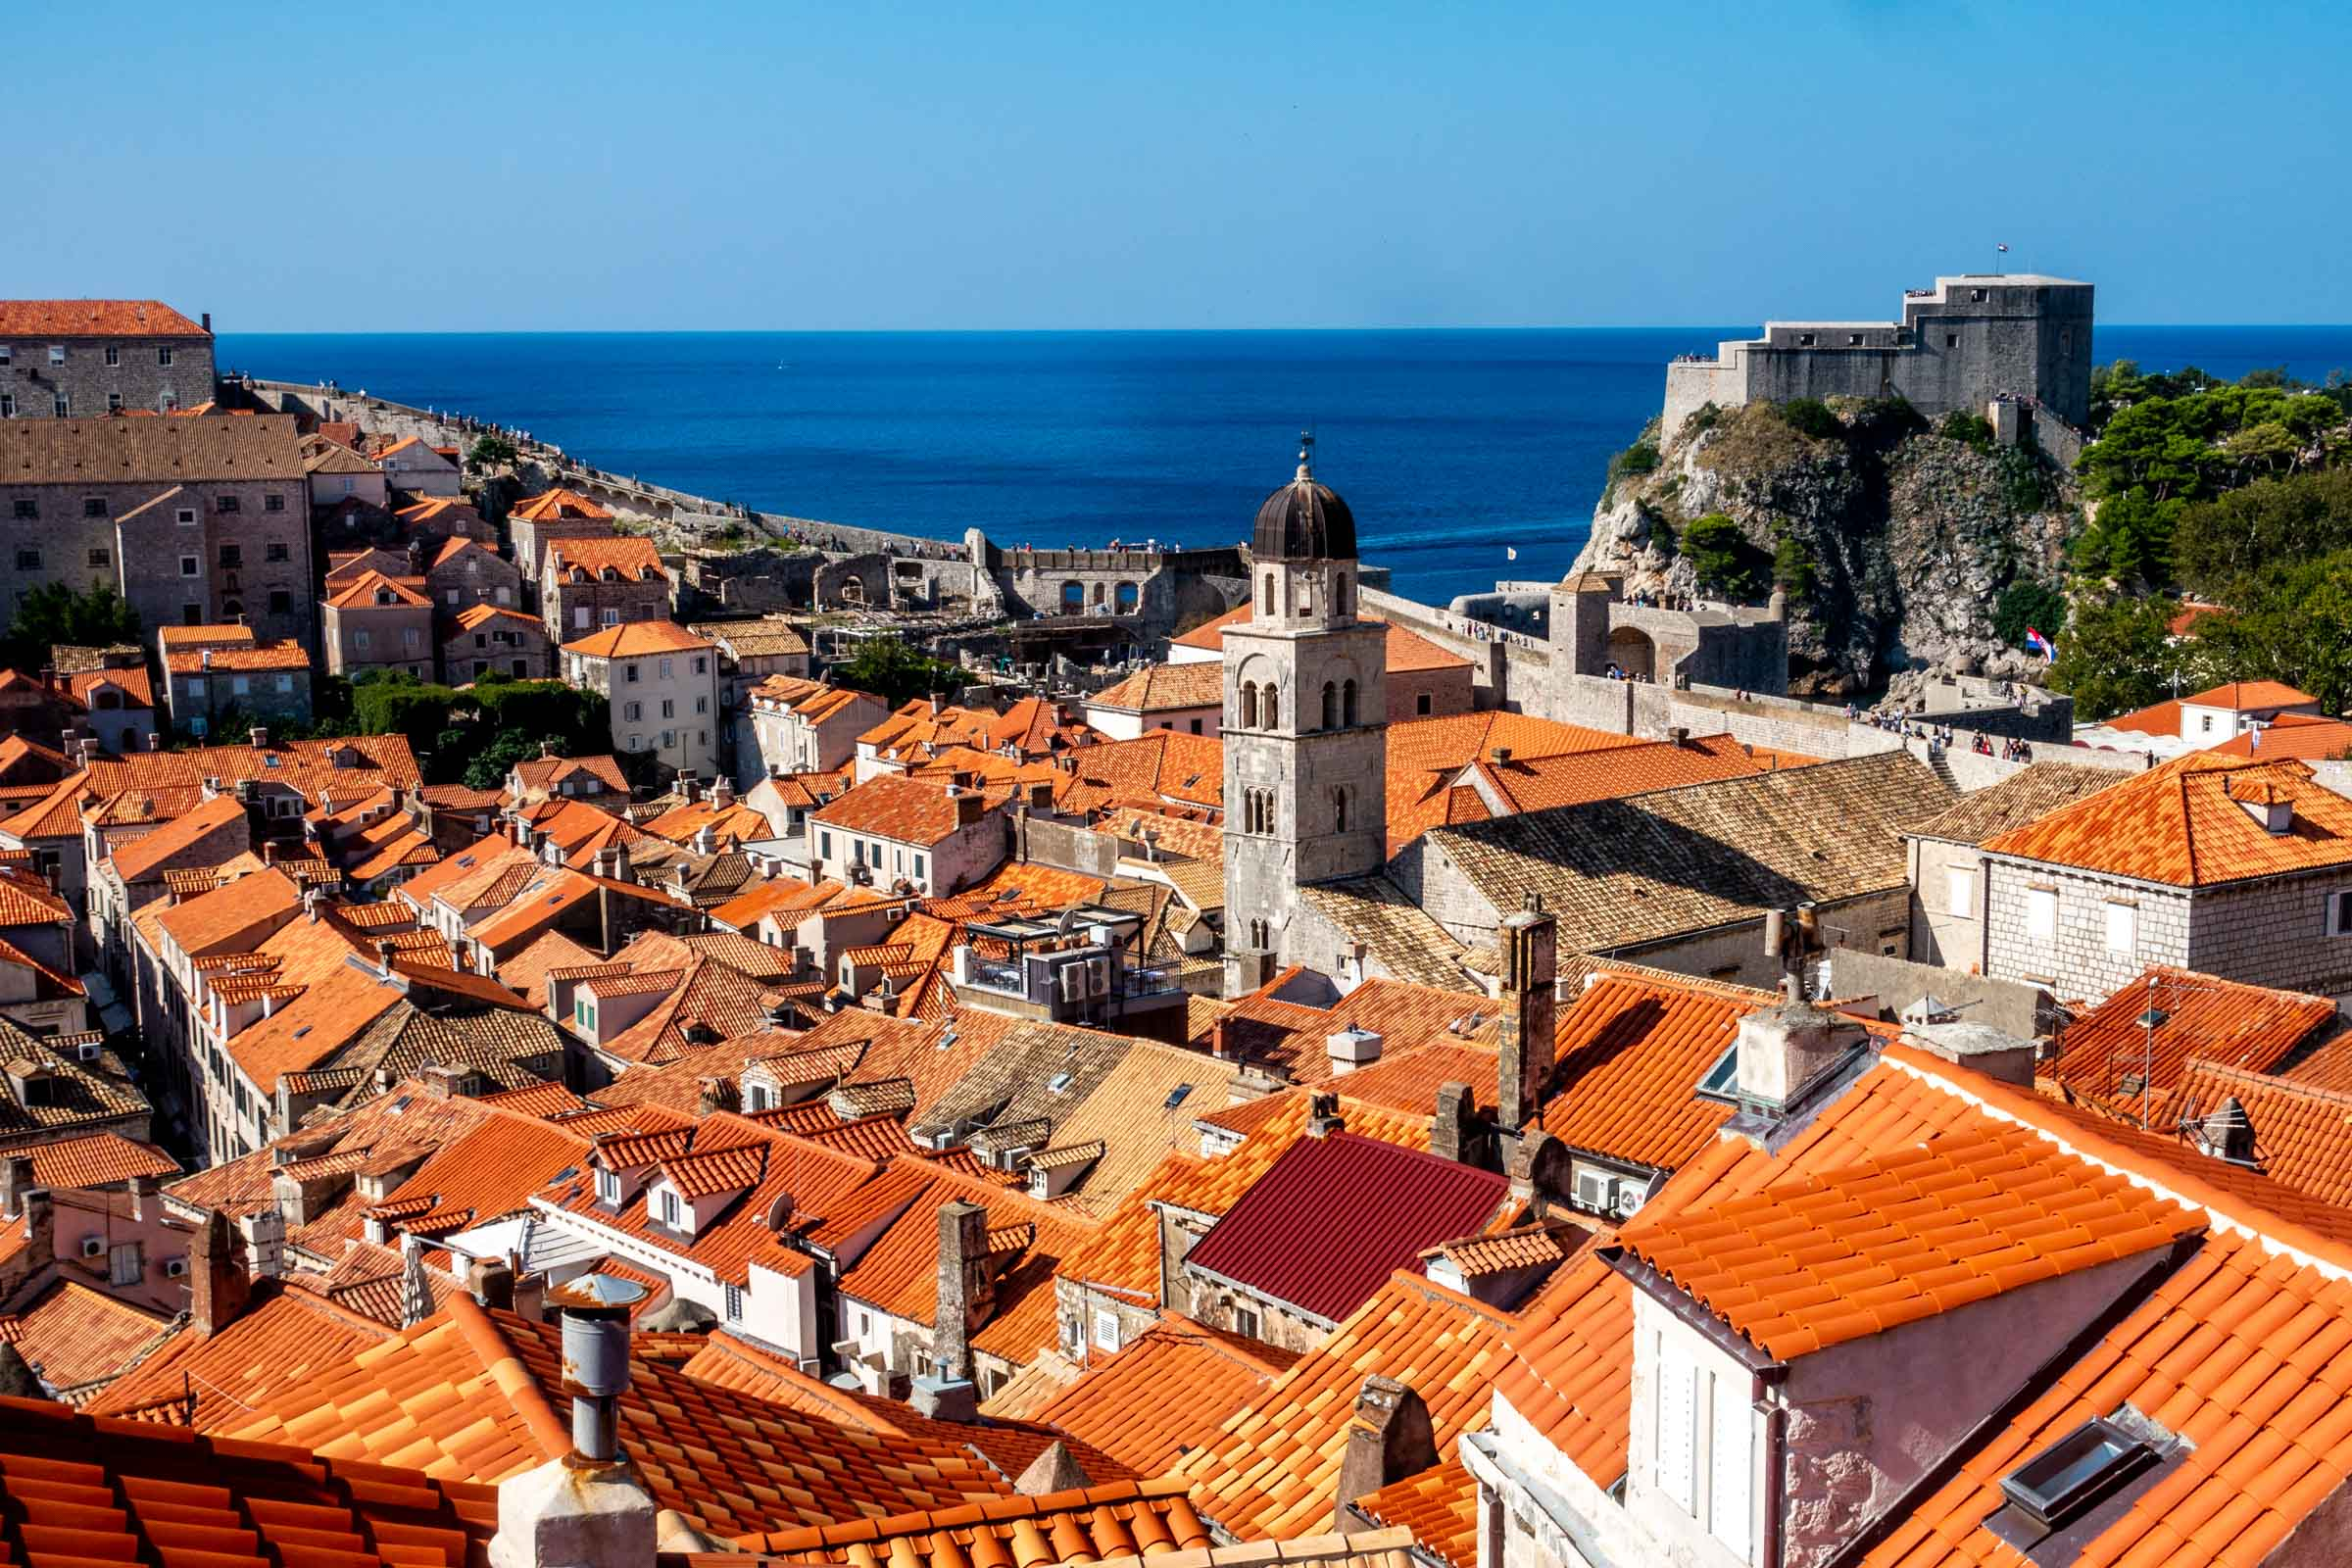 View of red roofs, bell tower, and ancient Dubrovnik city walls